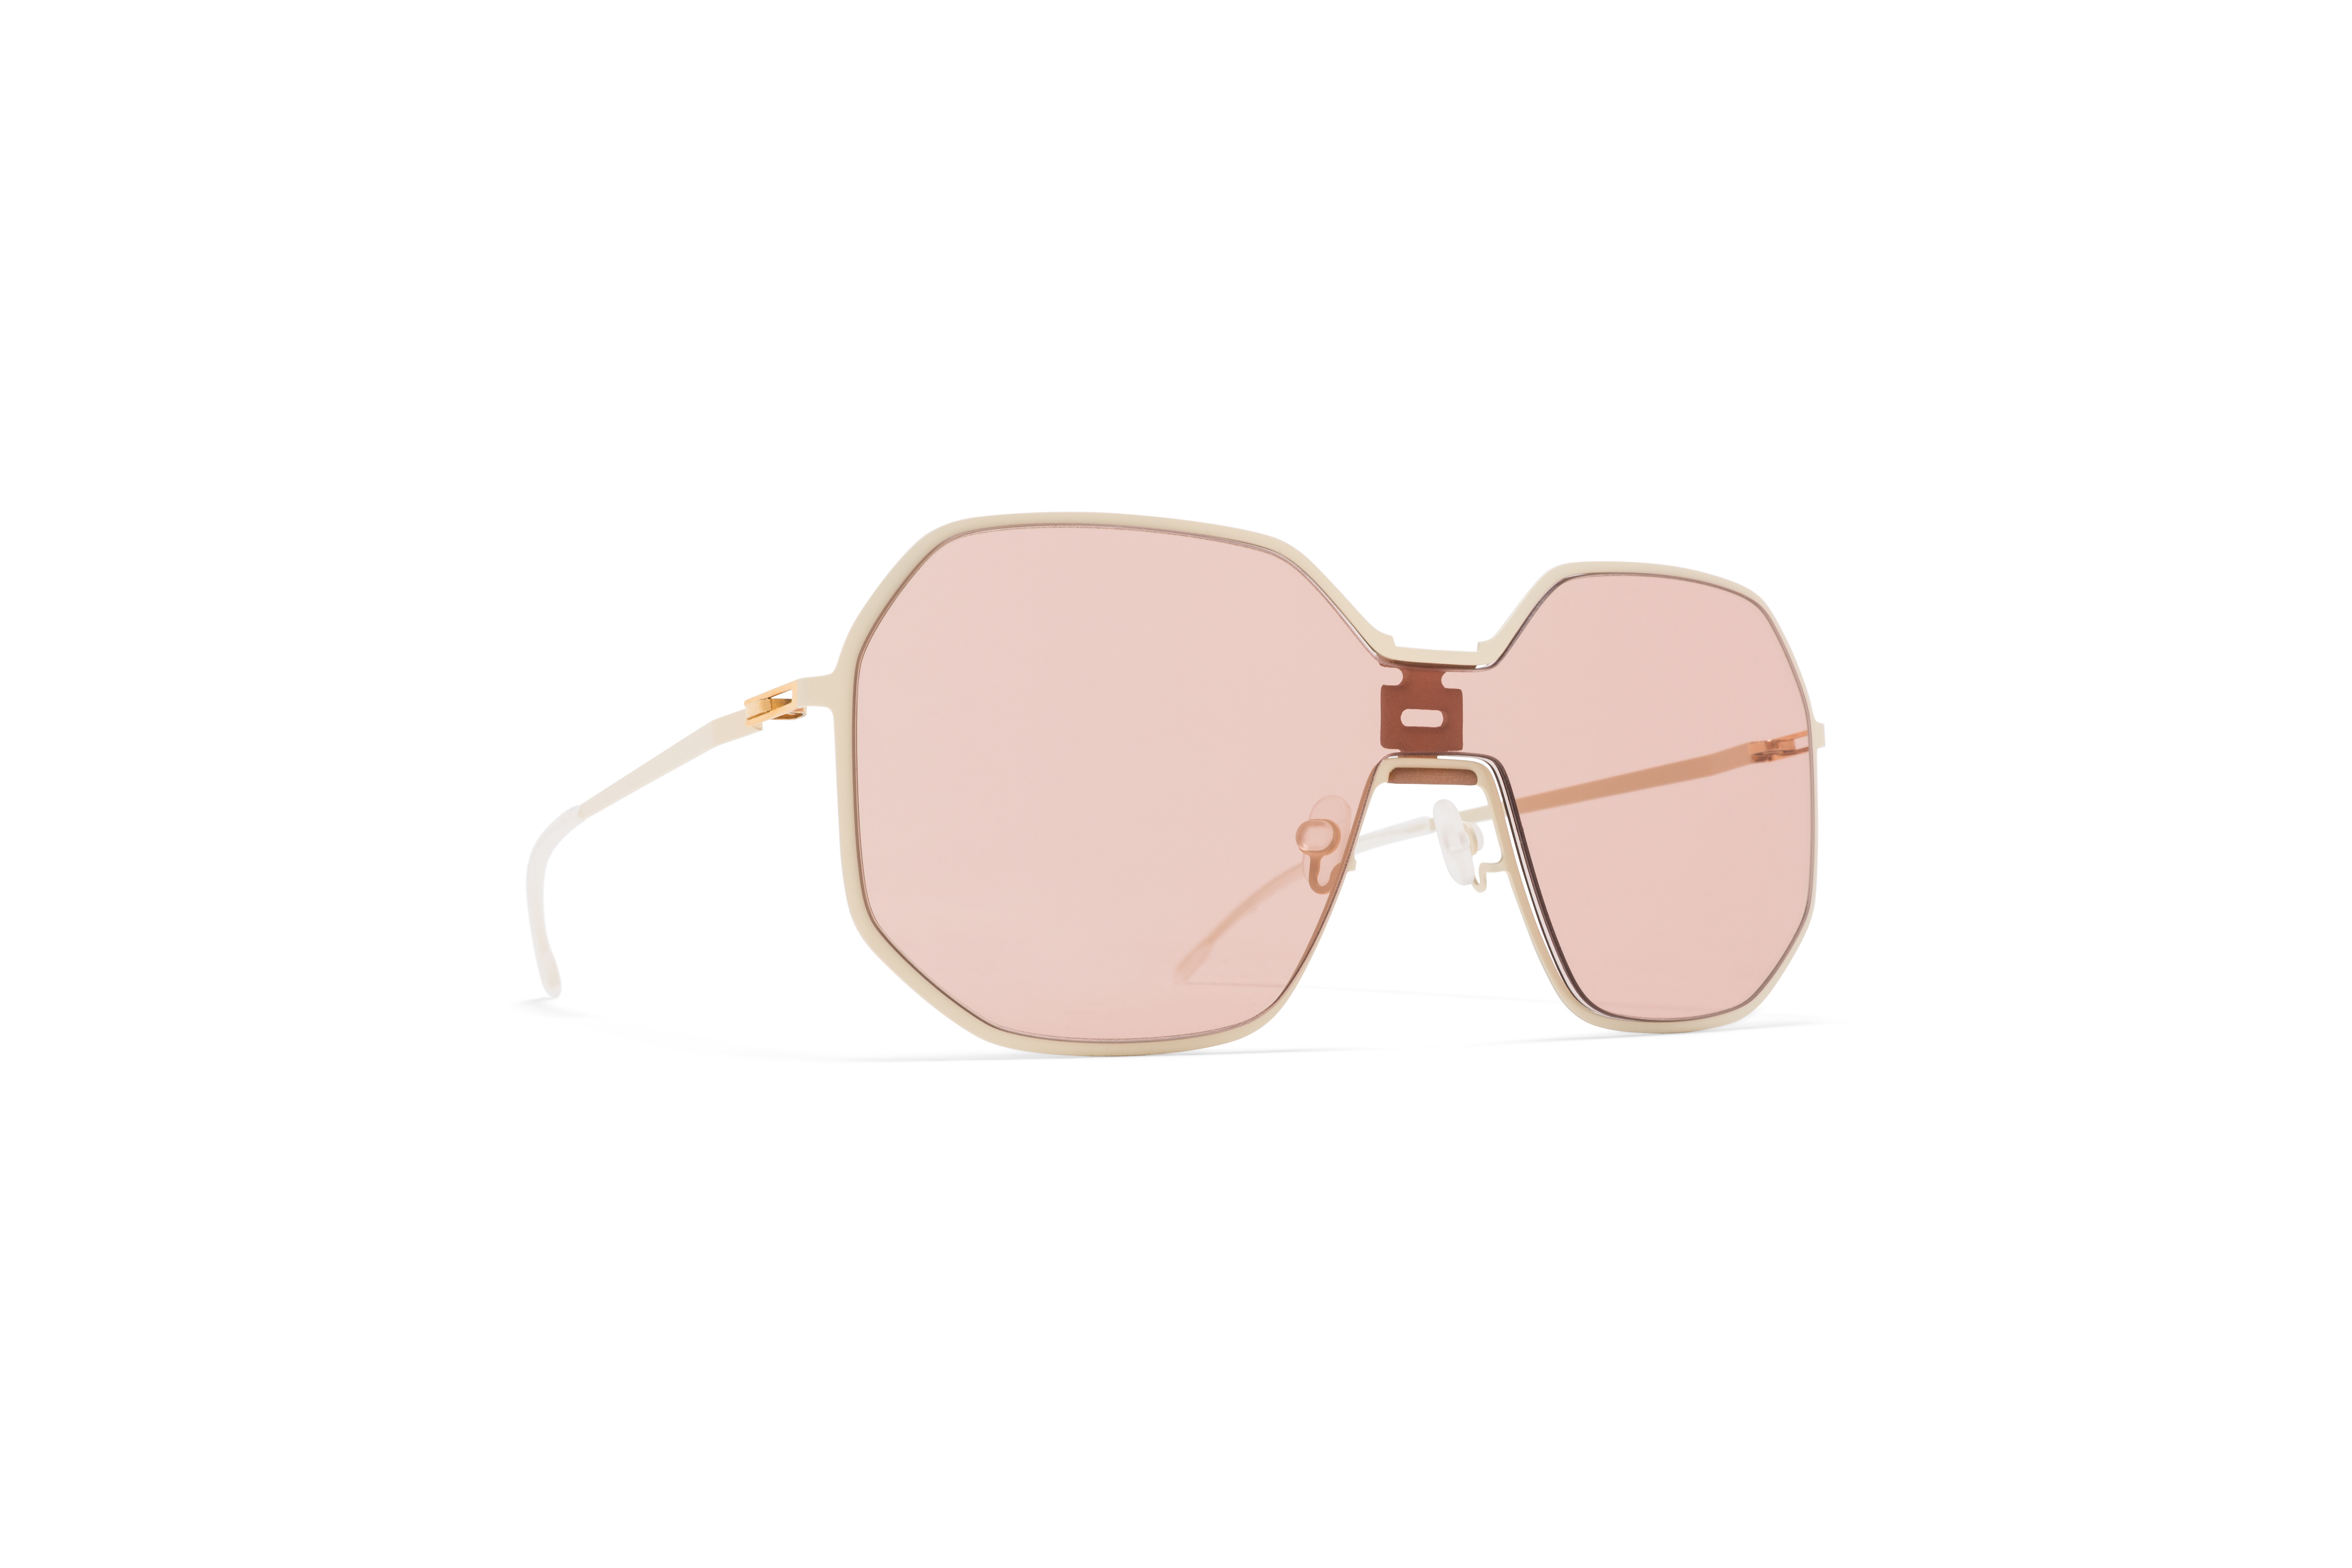 MYKITA Mm Sun Mmecho003 Mh21 Nude Off White Nude Solid Shield